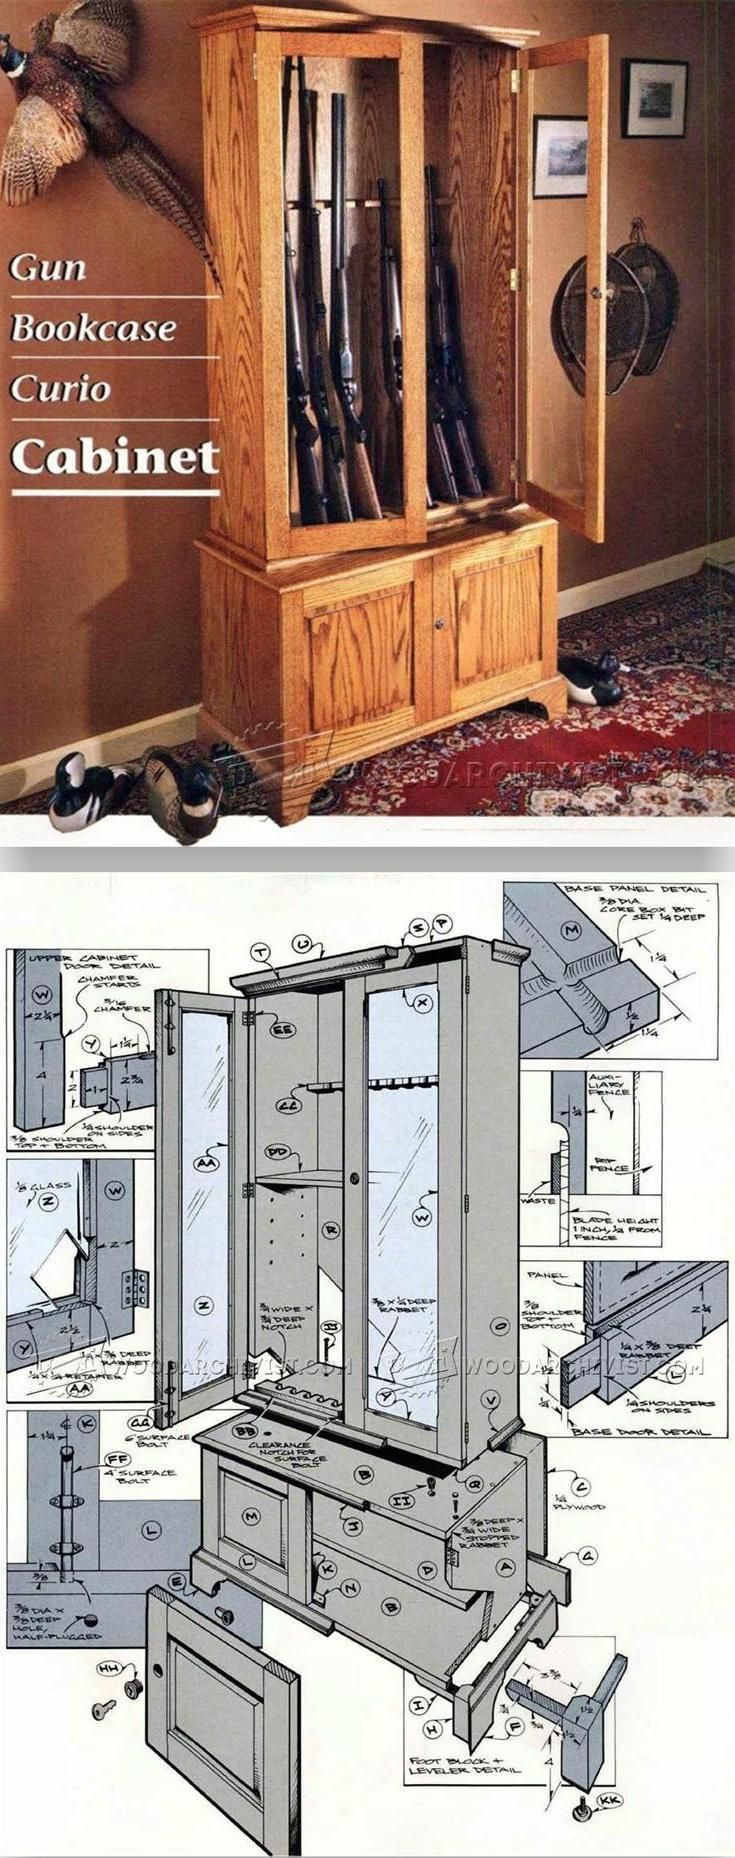 Gun Cabinet Plans - Furniture Plans and Projects | WoodArchivist.com